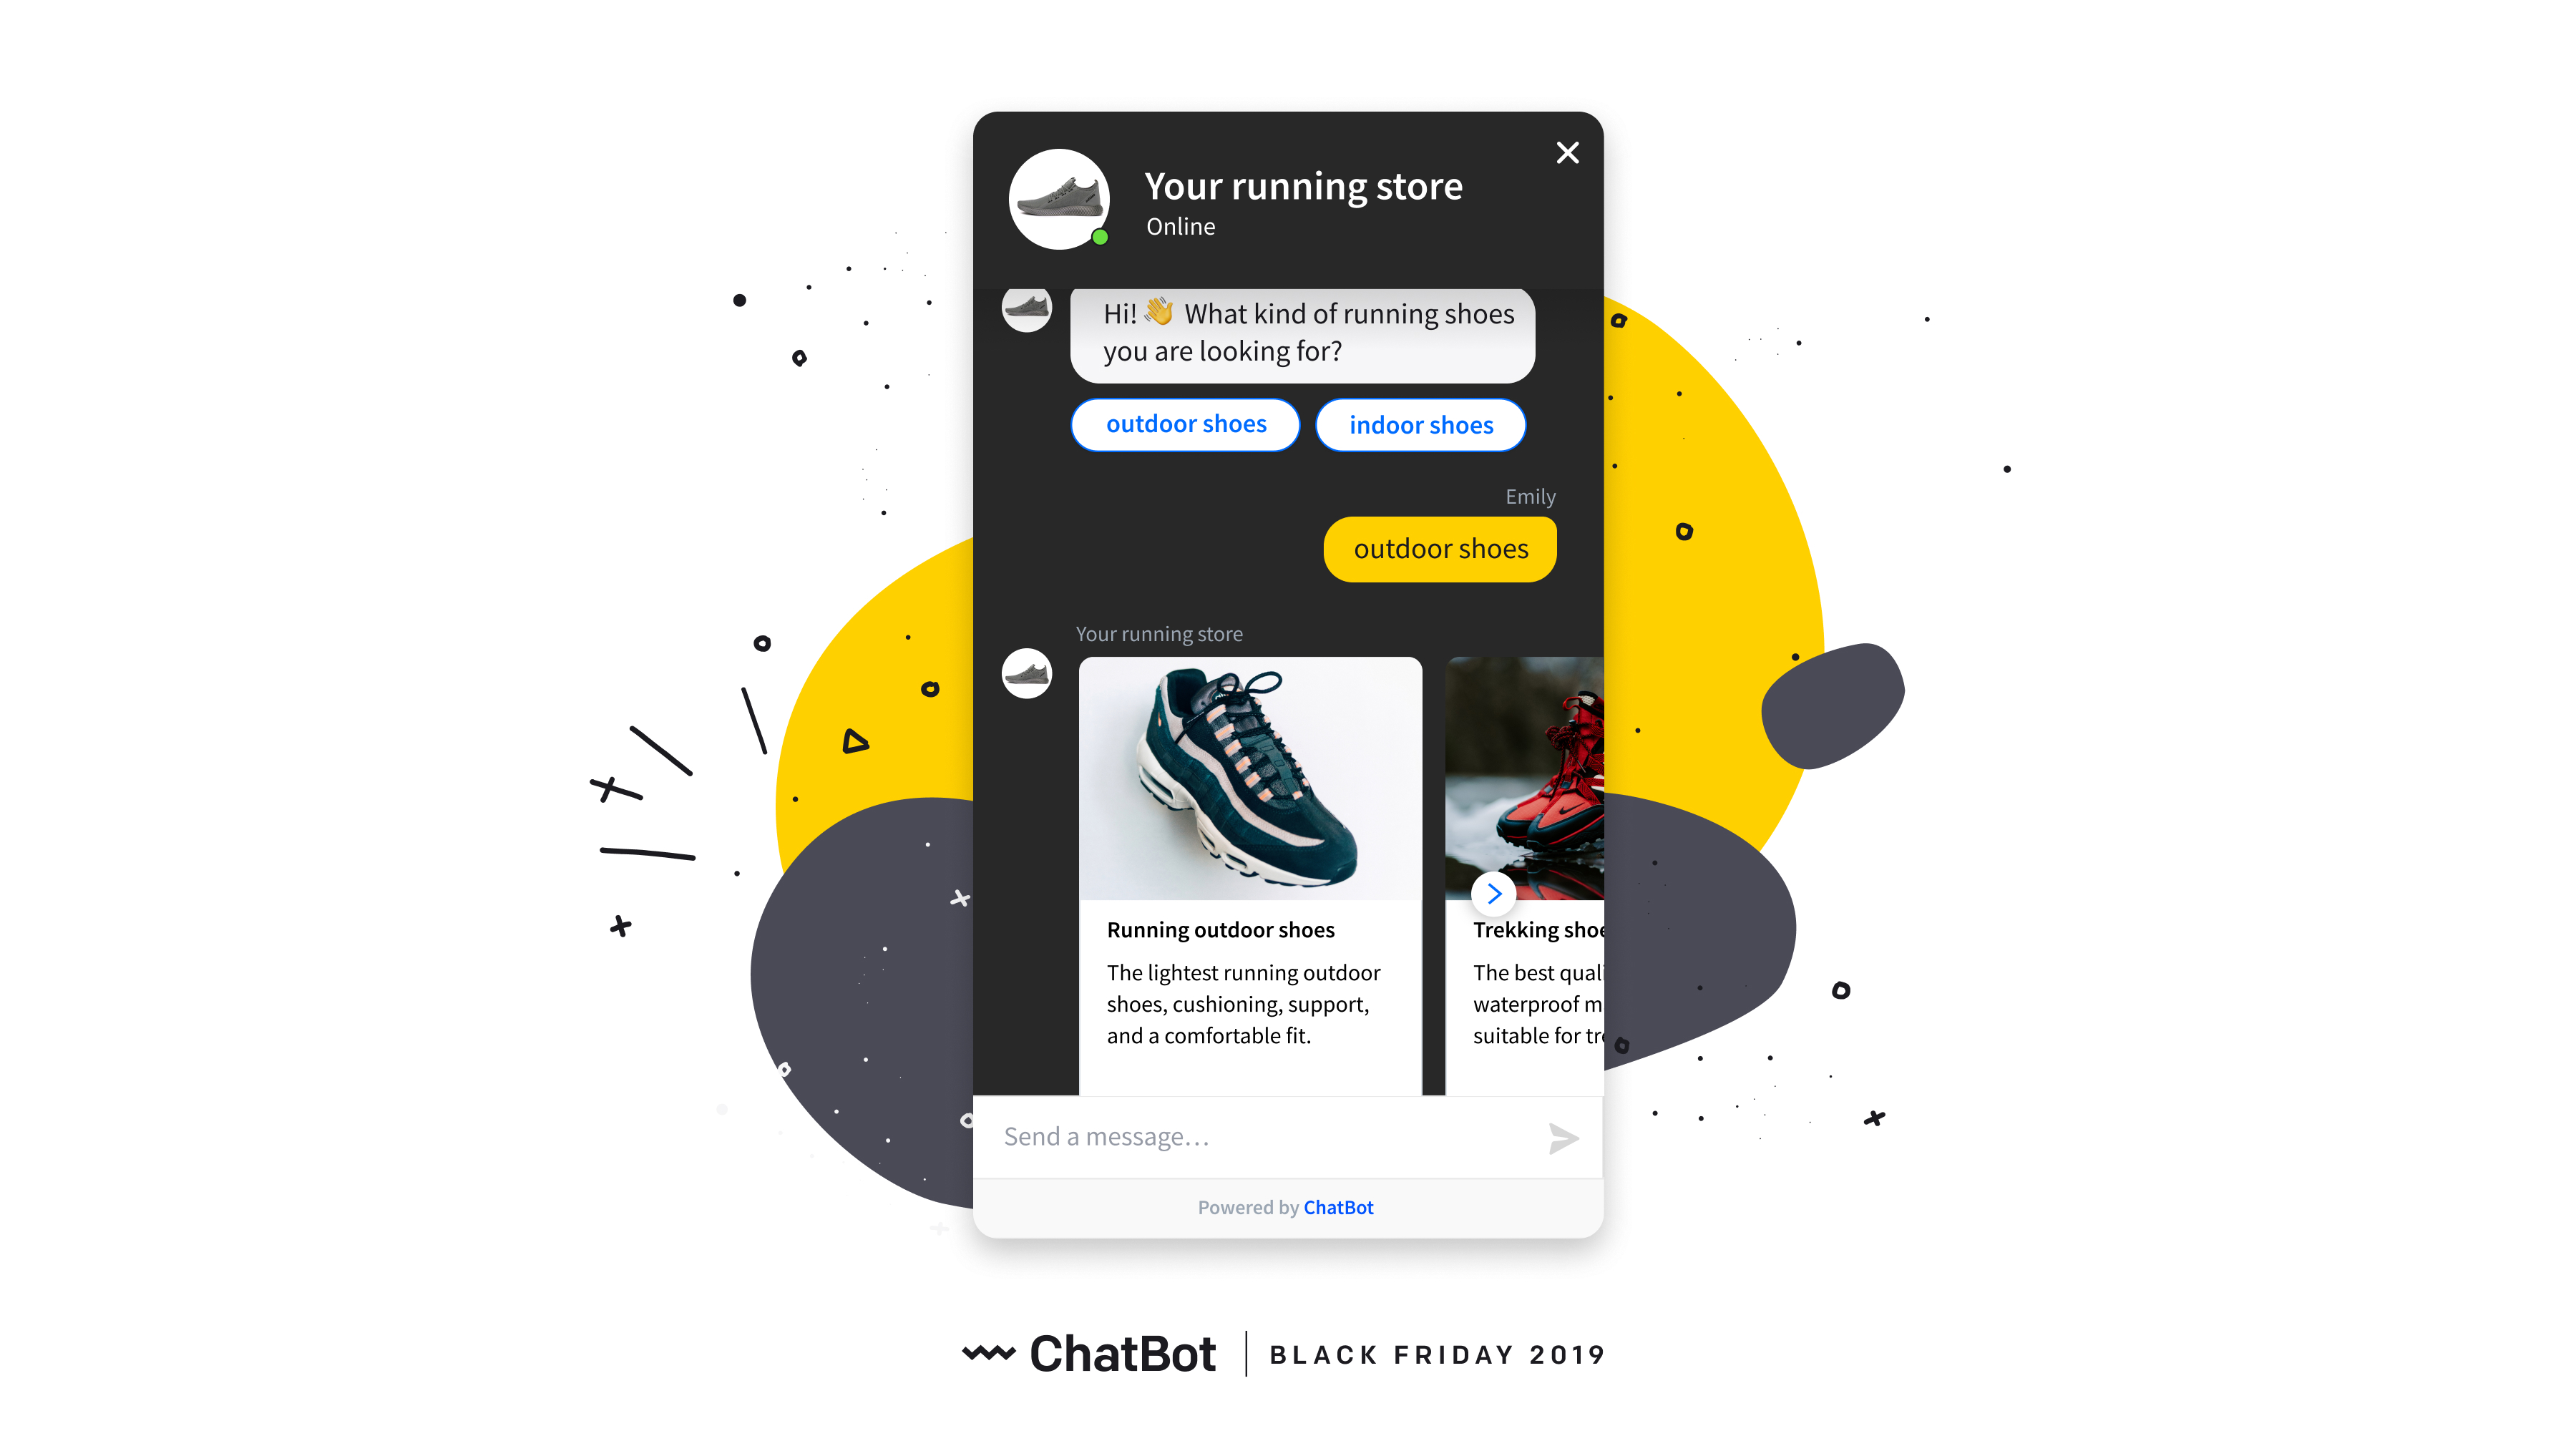 Black Friday - Boost customer engagement using a chat bot